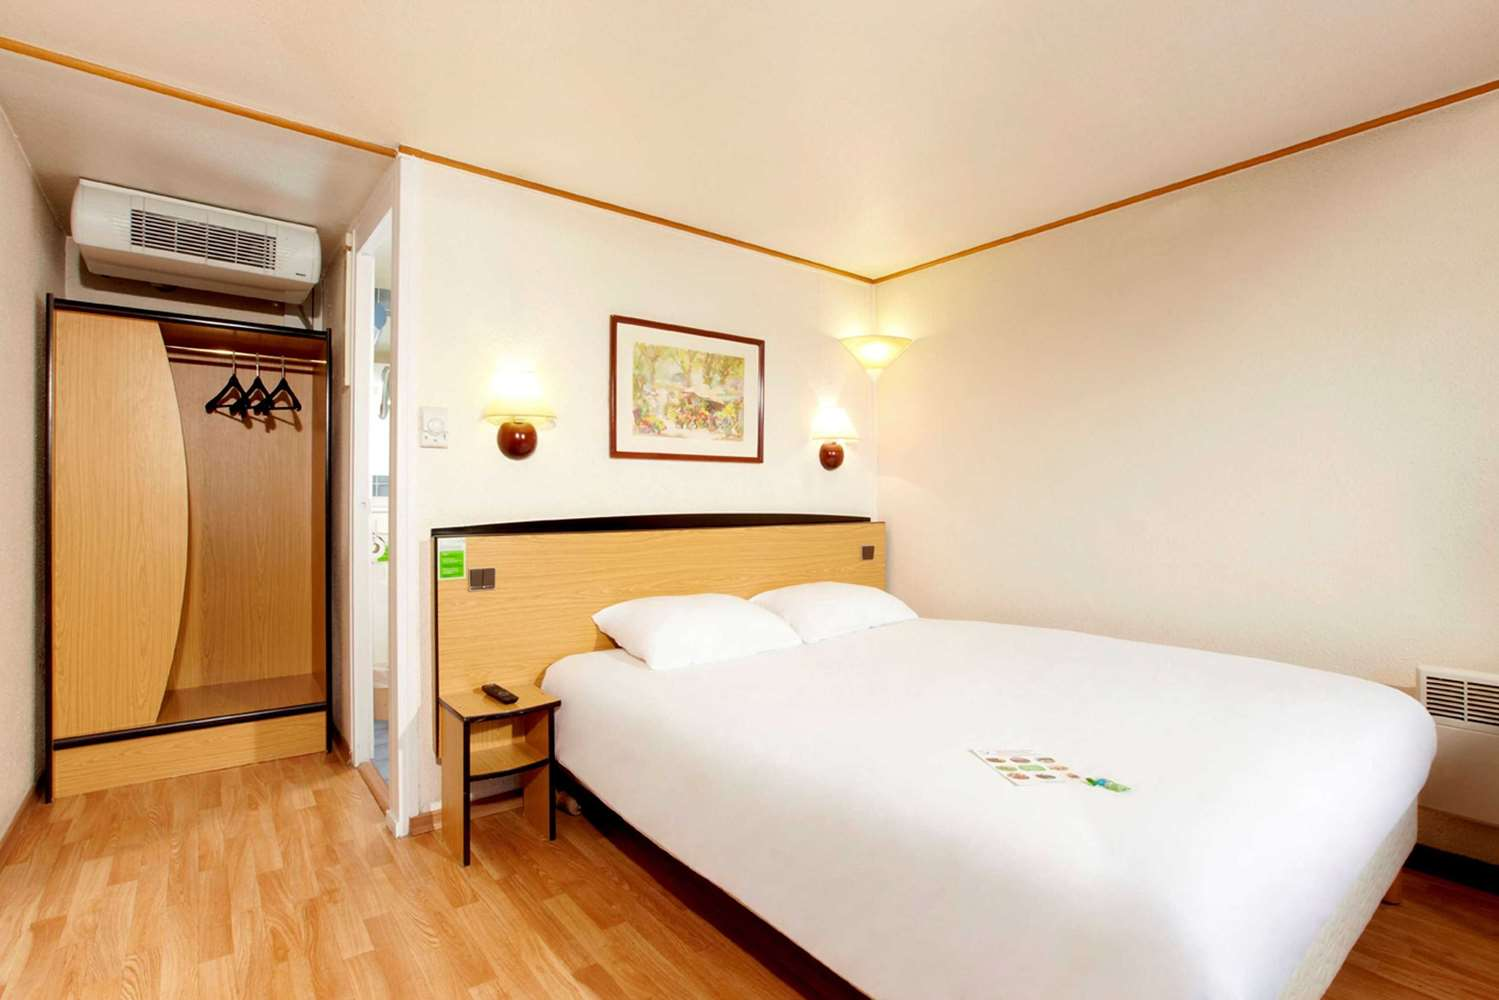 HOTEL KYRIAD DIRECT LE BOURGET - GONESSE